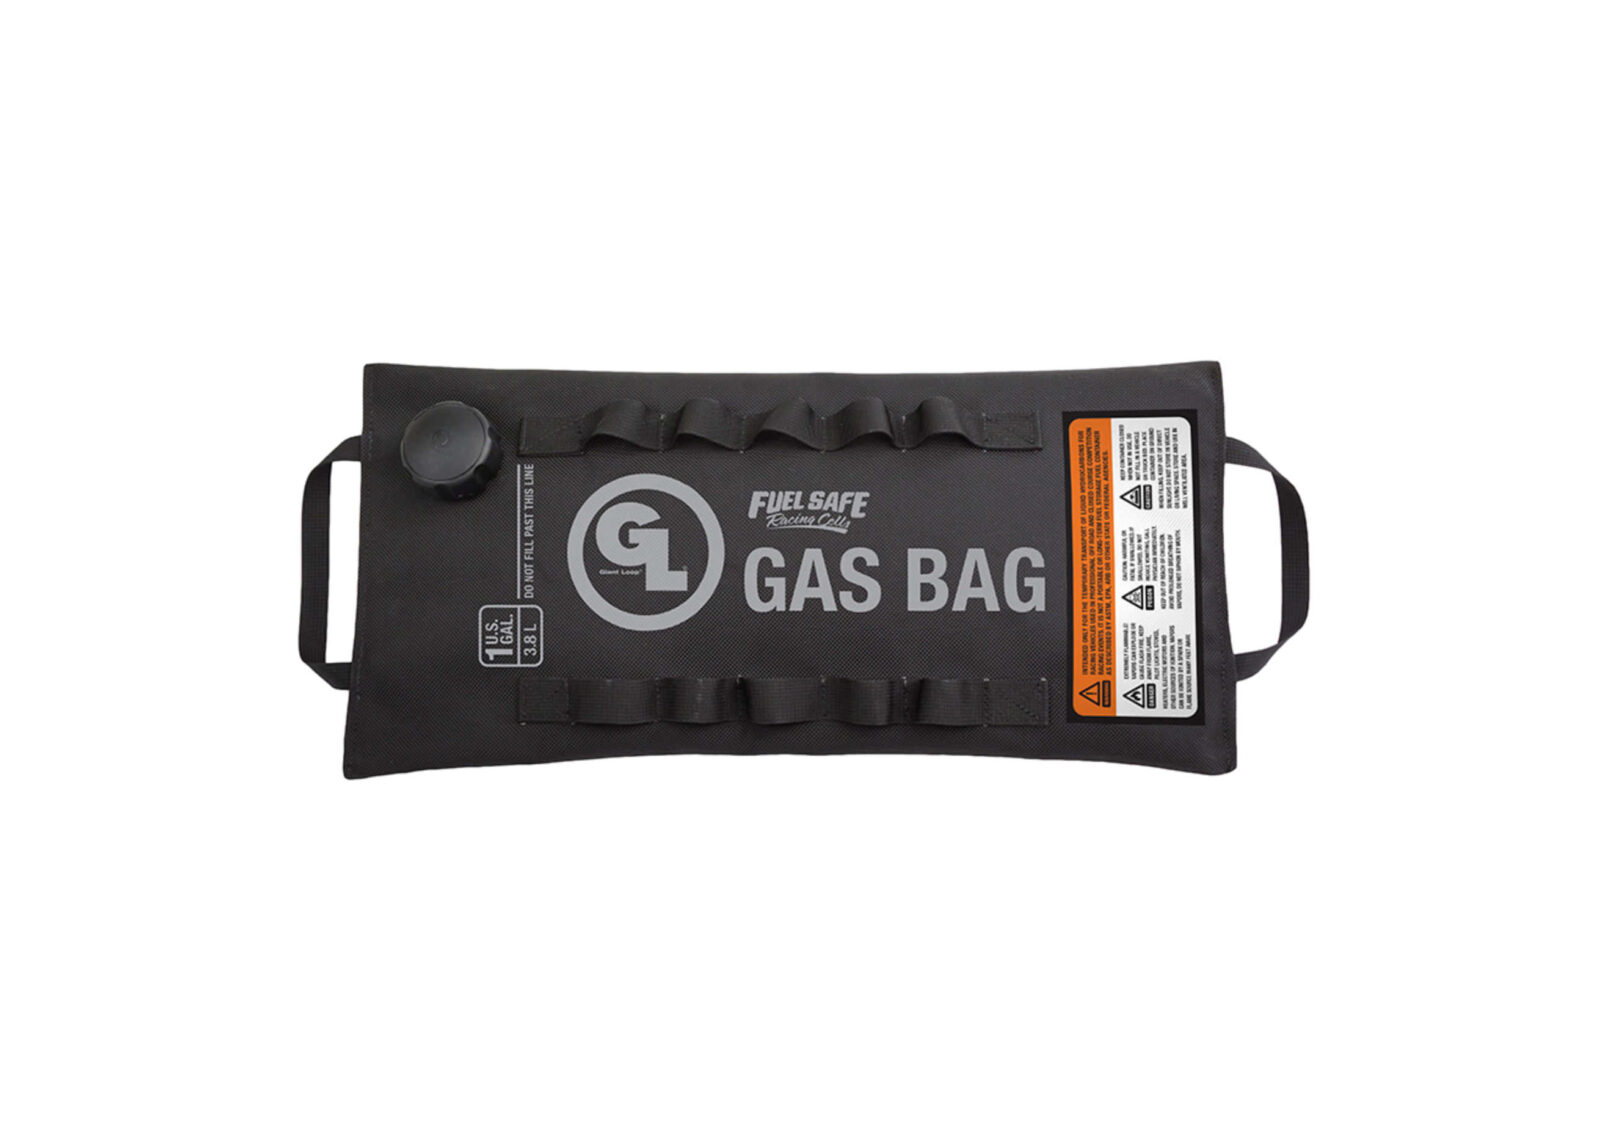 Gas Bag - Giant Loop Fuel Safe Bladder